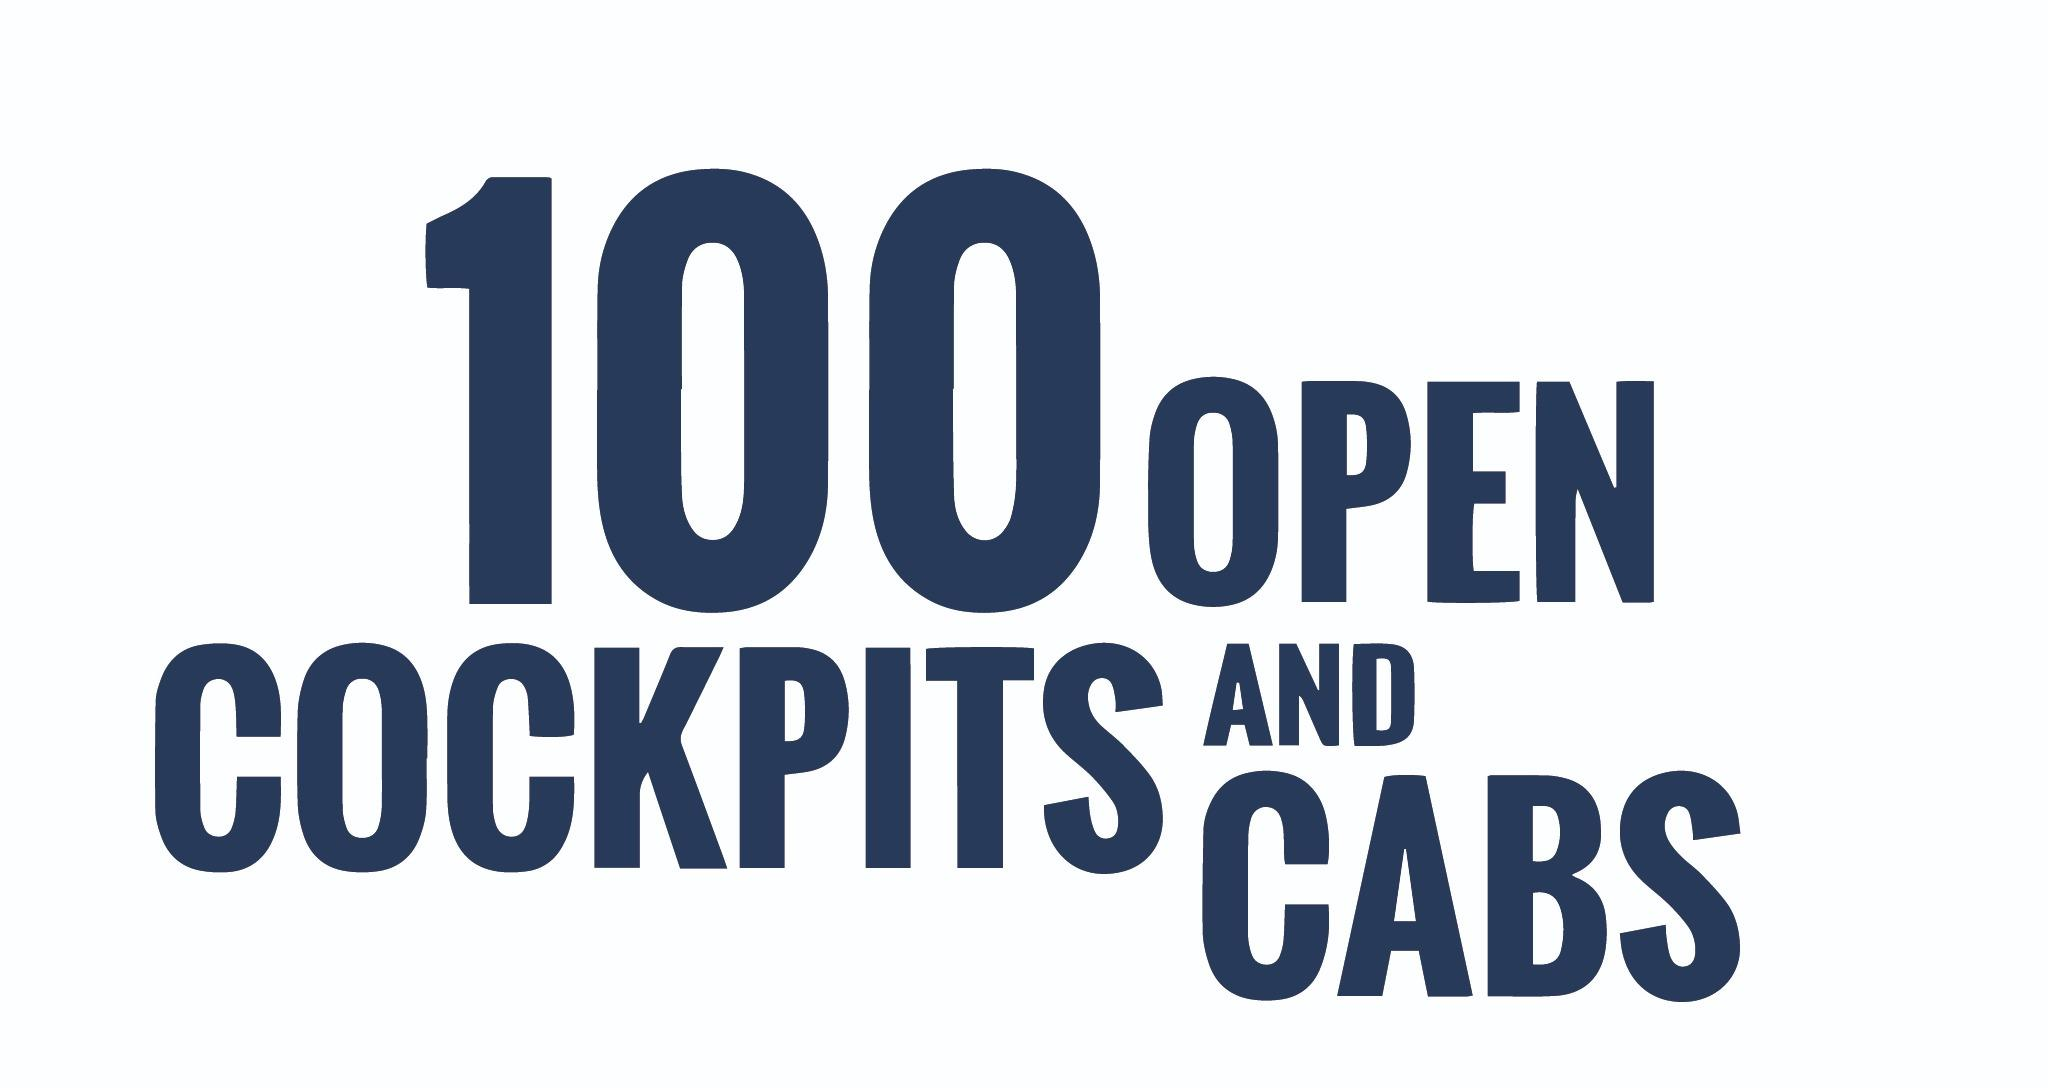 The 100 Open Cockpits and Cabs logo